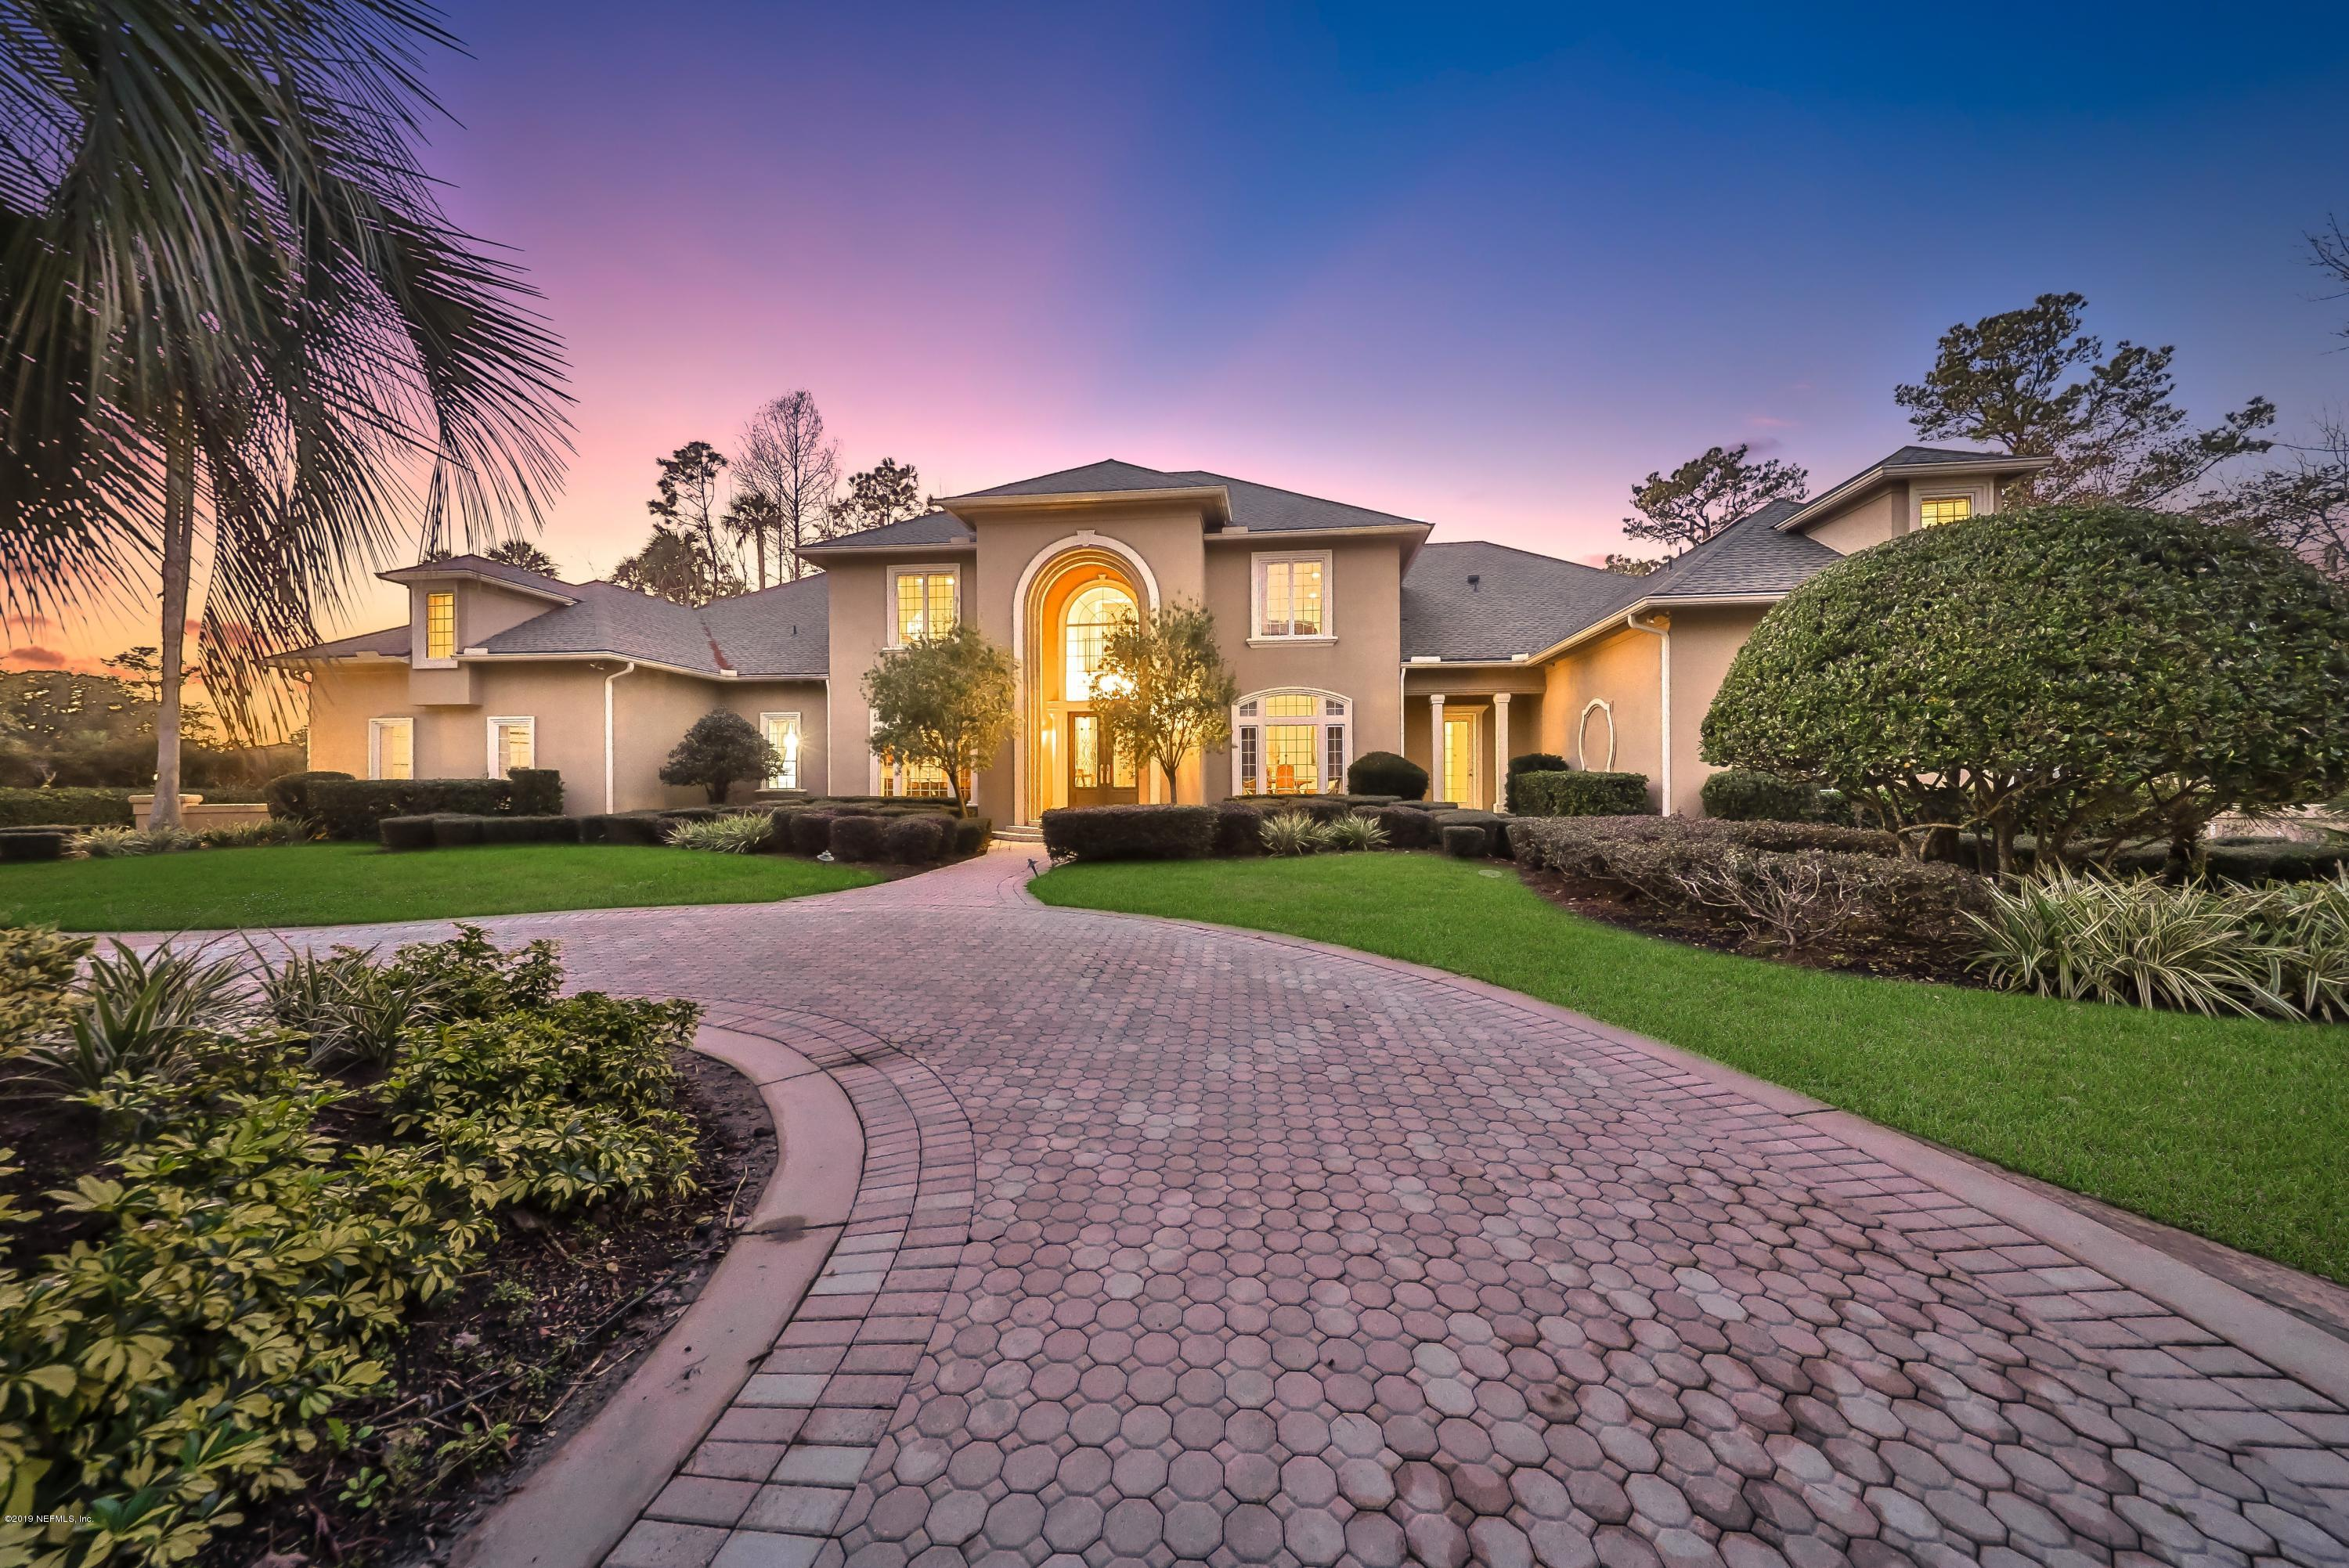 7230 OAKMONT, PONTE VEDRA BEACH, FLORIDA 32082, 6 Bedrooms Bedrooms, ,7 BathroomsBathrooms,Residential - single family,For sale,OAKMONT,974693